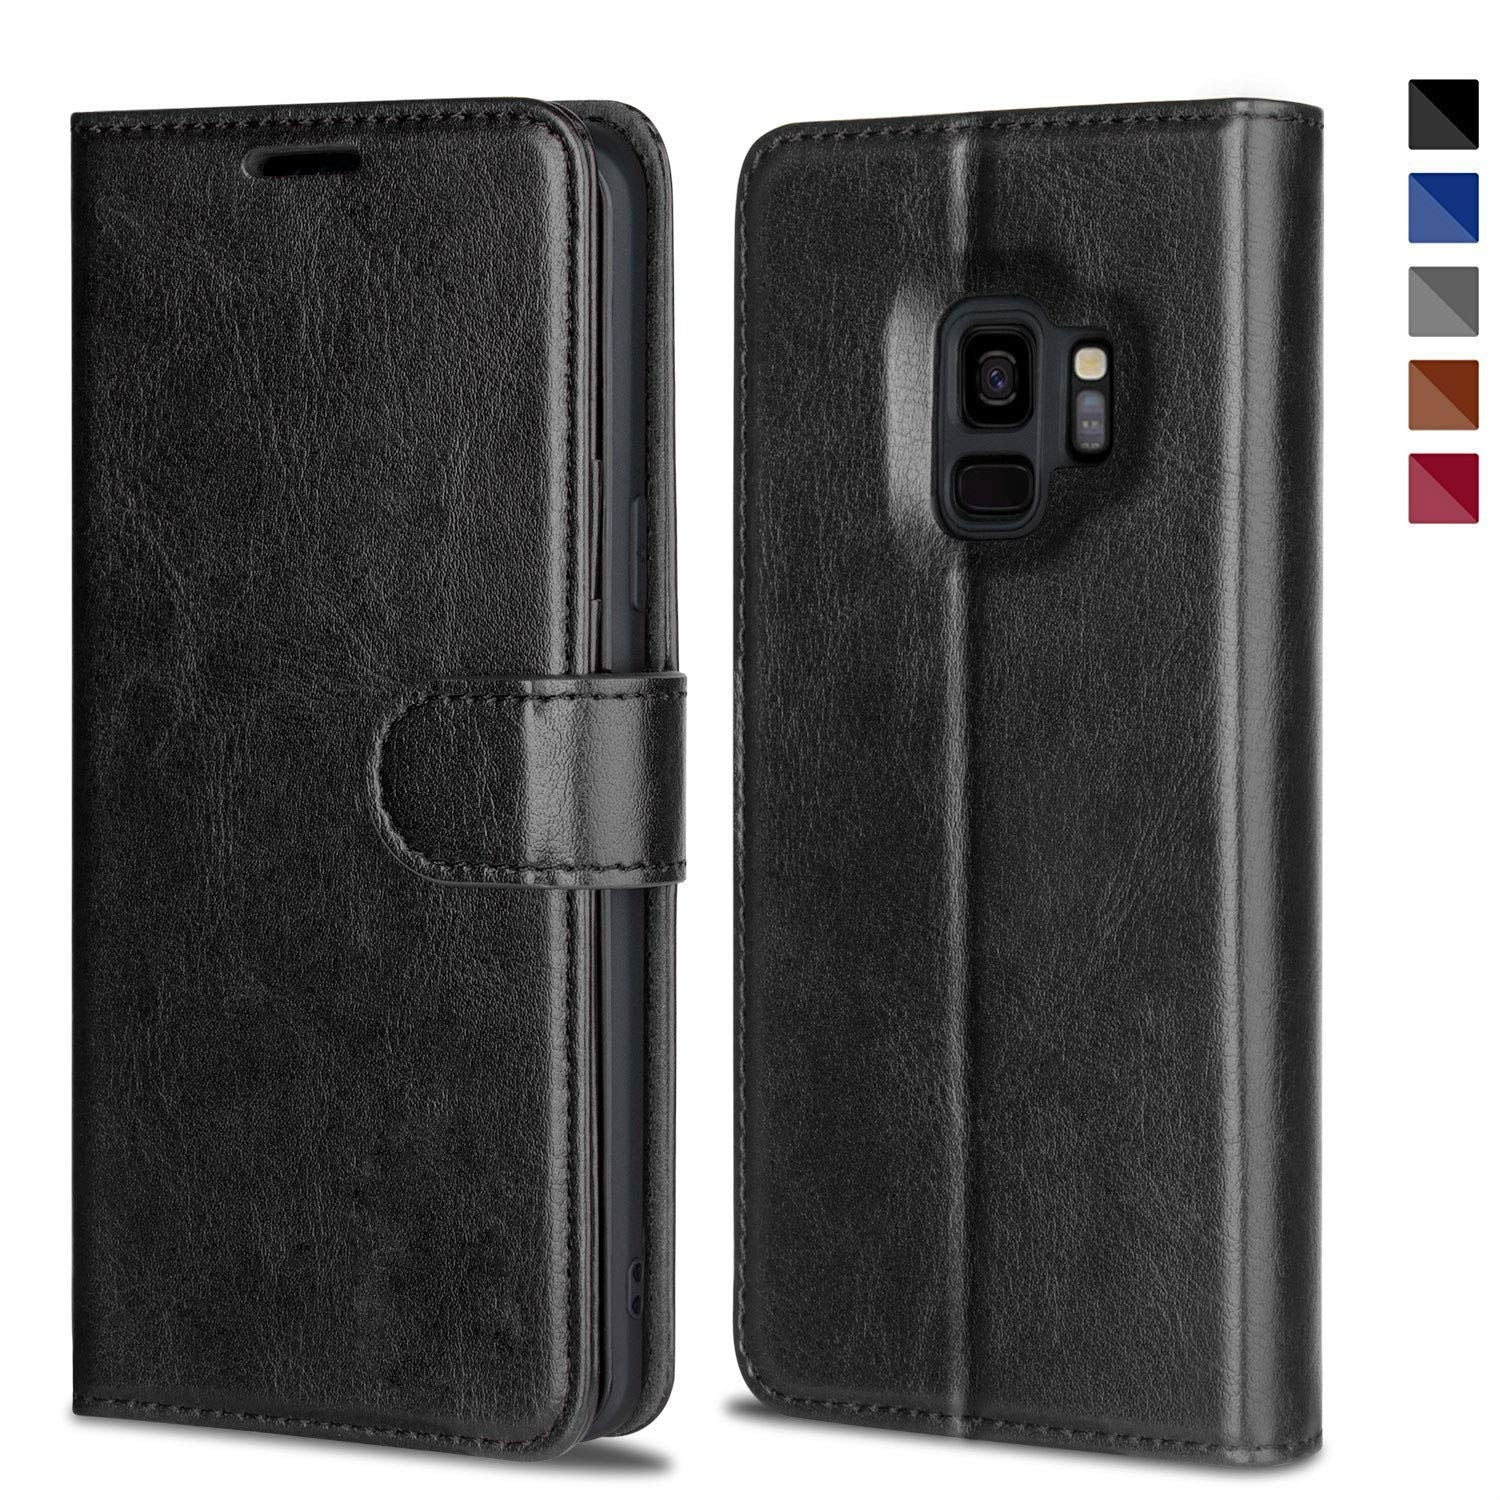 Leather Wallet Magnetic Flip Case with strap Samsung Galaxy S9 or S9 Plus